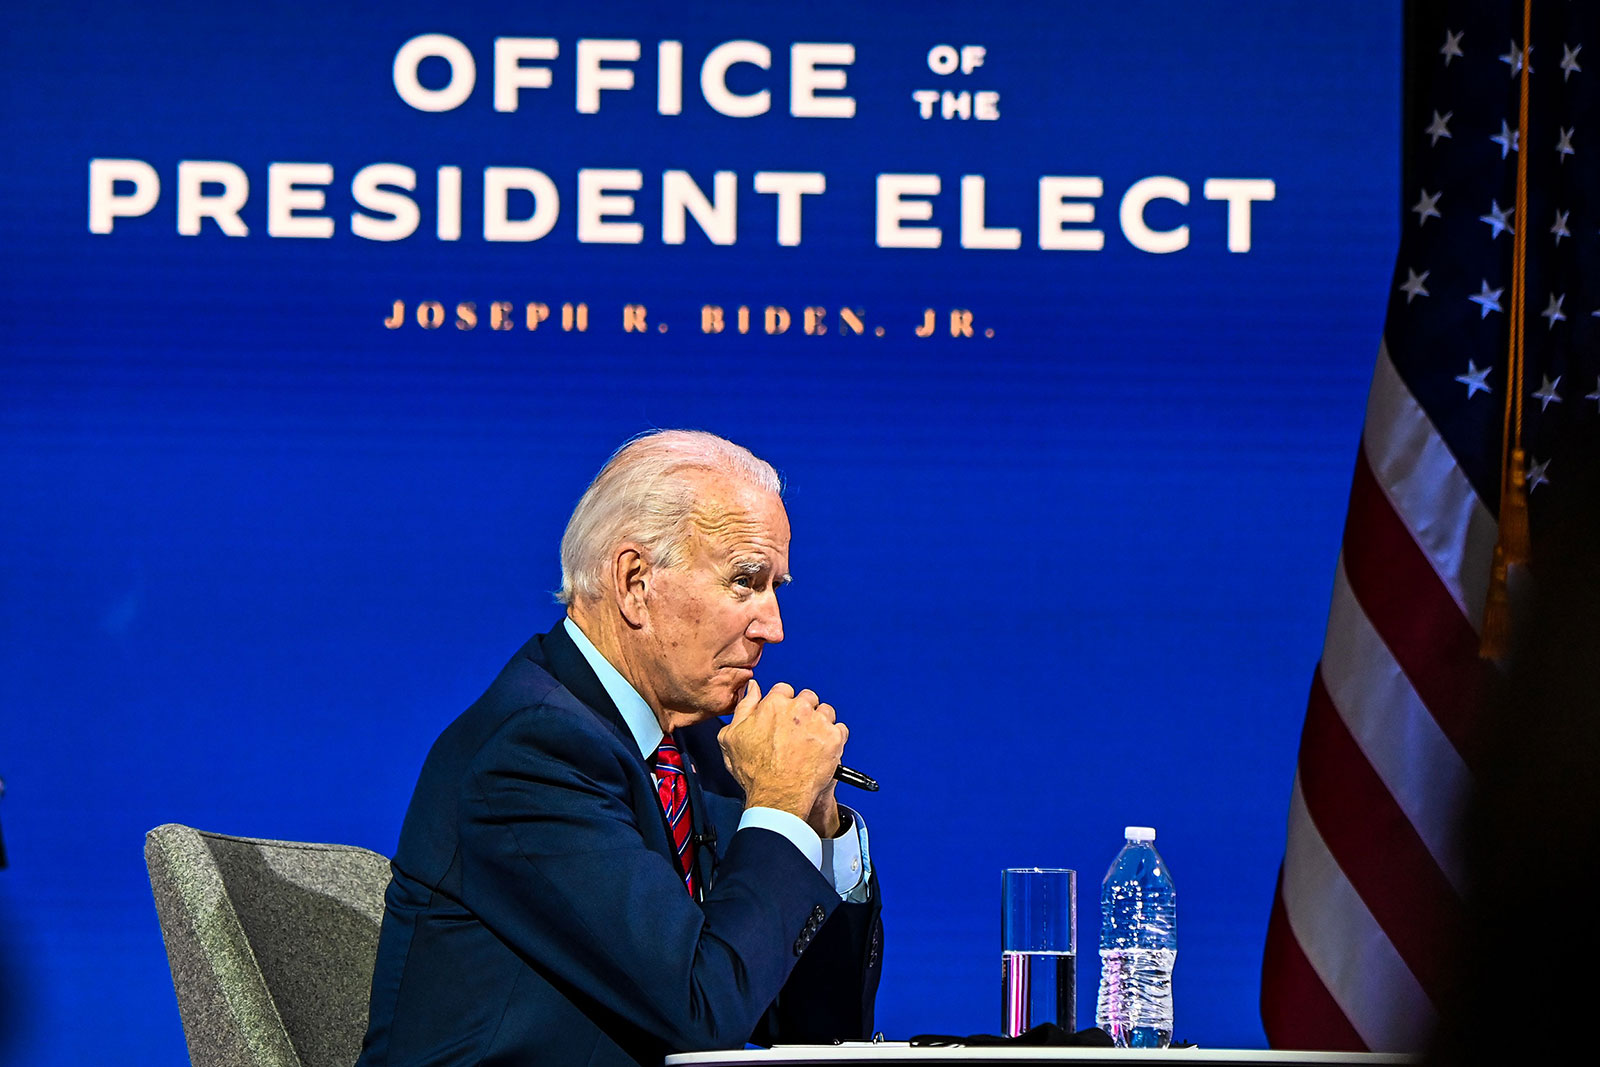 President-elect Joe Biden participates in a virtual meeting with the United States Conference of Mayors in Wilmington, Delaware, on Monday, November 23.